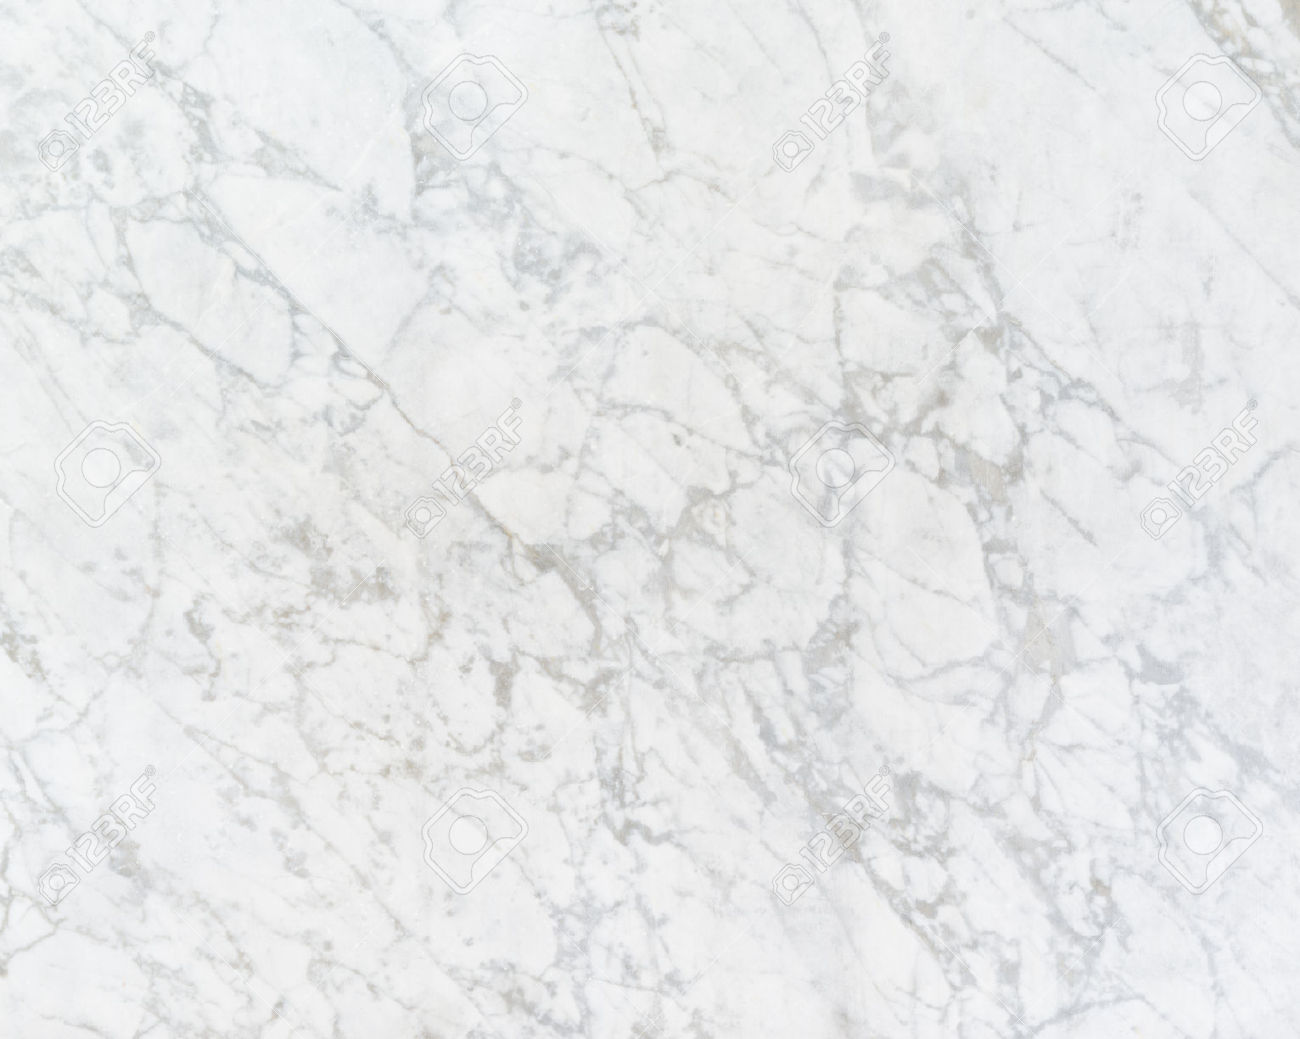 39447340-Bright-smooth-white-marble-texture-background-for-decorative-wall-Stock-Photo copy.jpg